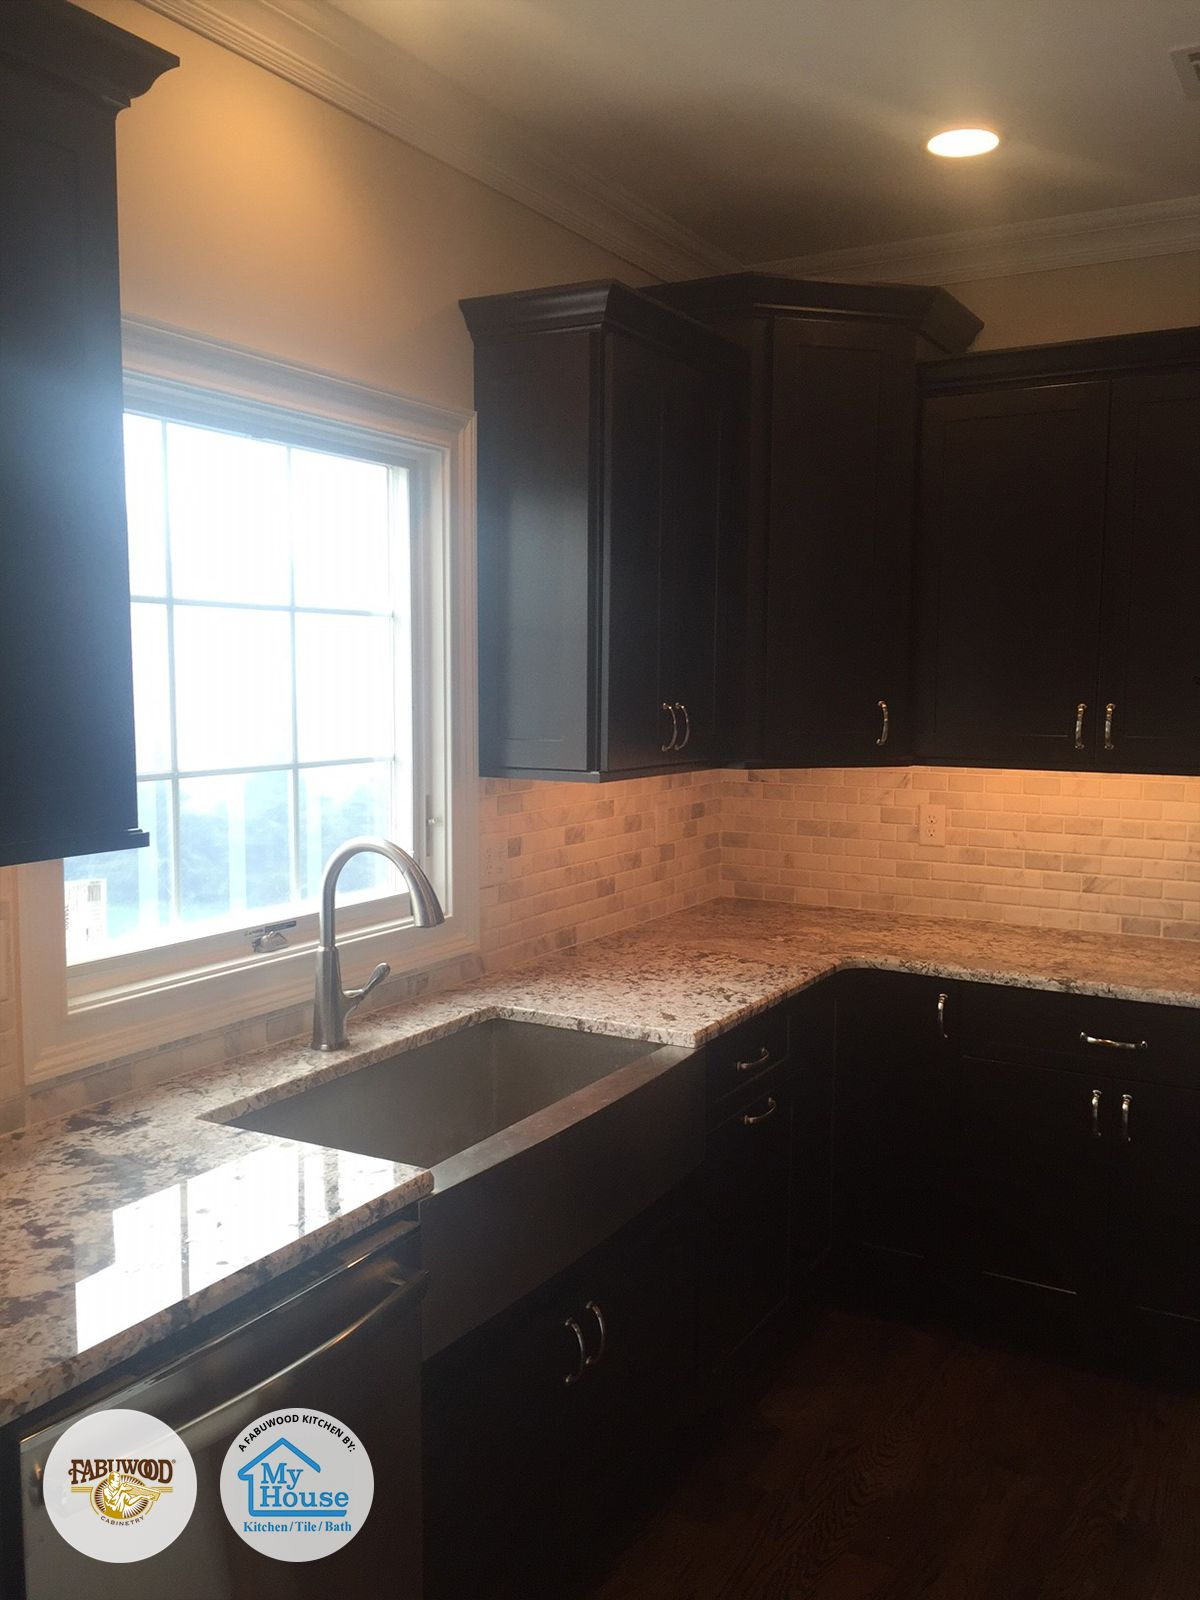 Fabuwood Galaxy Espresso And Frost Built By My House Kitchen Tile And Bath  Located In Union, NJ Designer: Bora